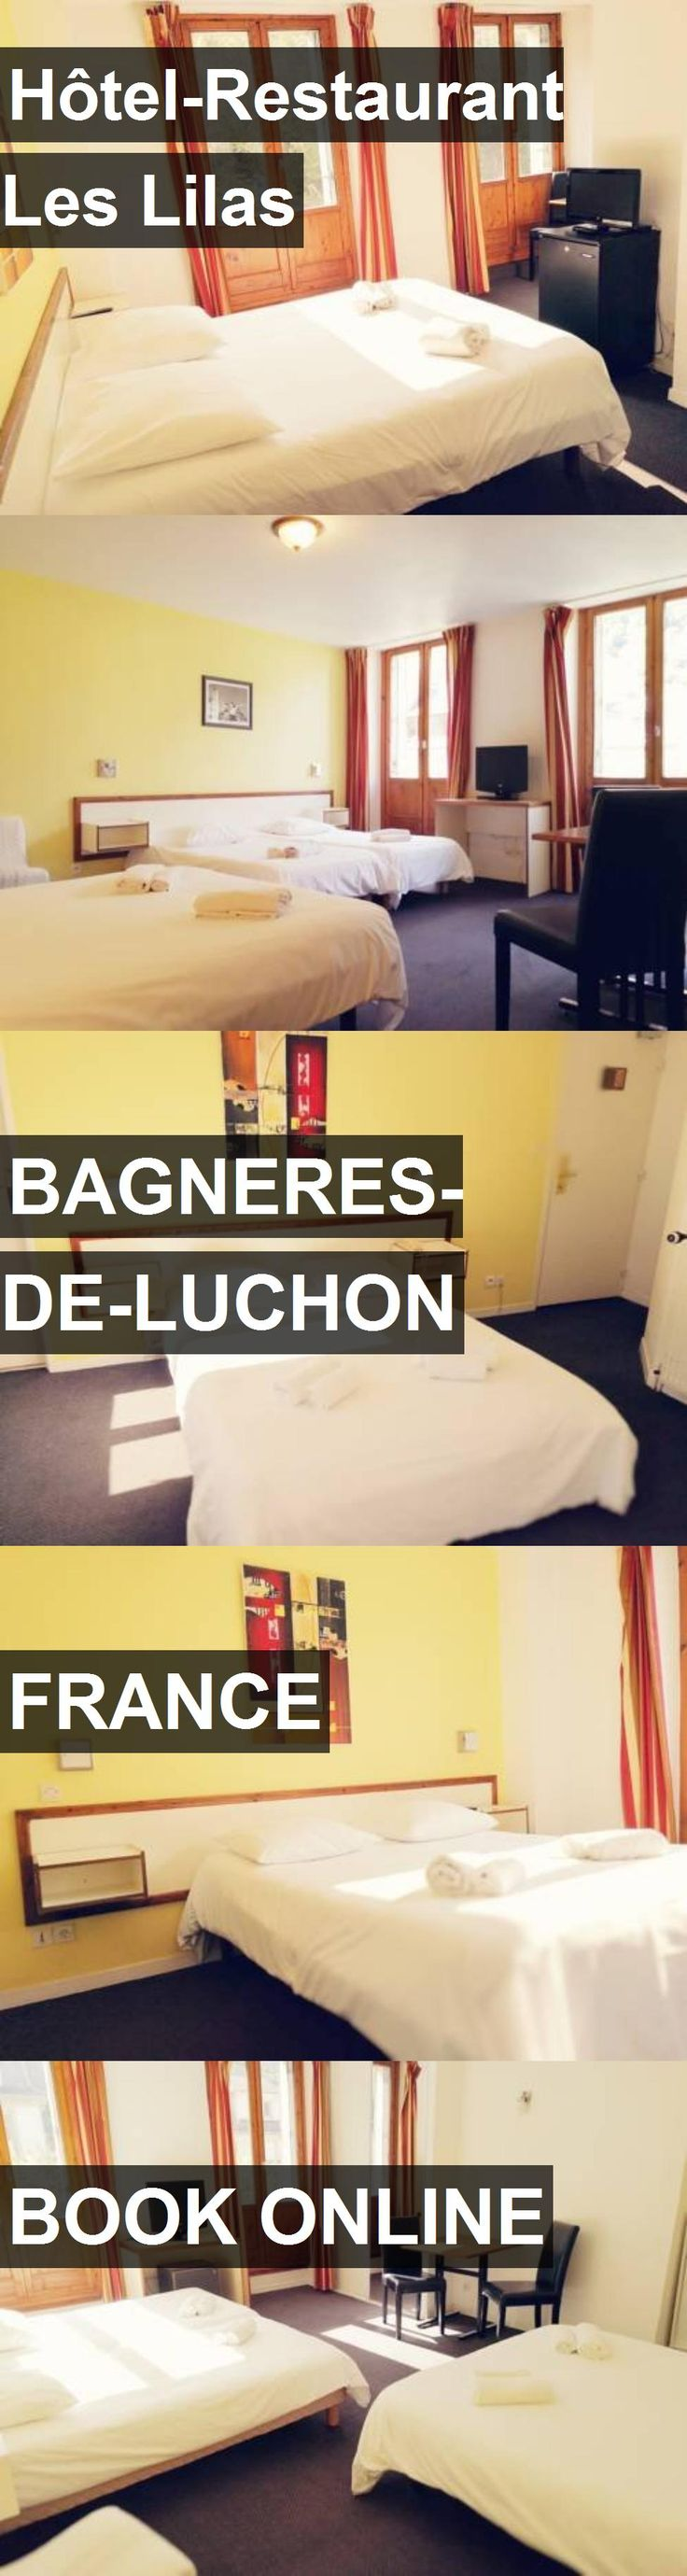 Hotel Hôtel-Restaurant Les Lilas in Bagneres-de-Luchon, France. For more information, photos, reviews and best prices please follow the link. #France #Bagneres-de-Luchon #travel #vacation #hotel